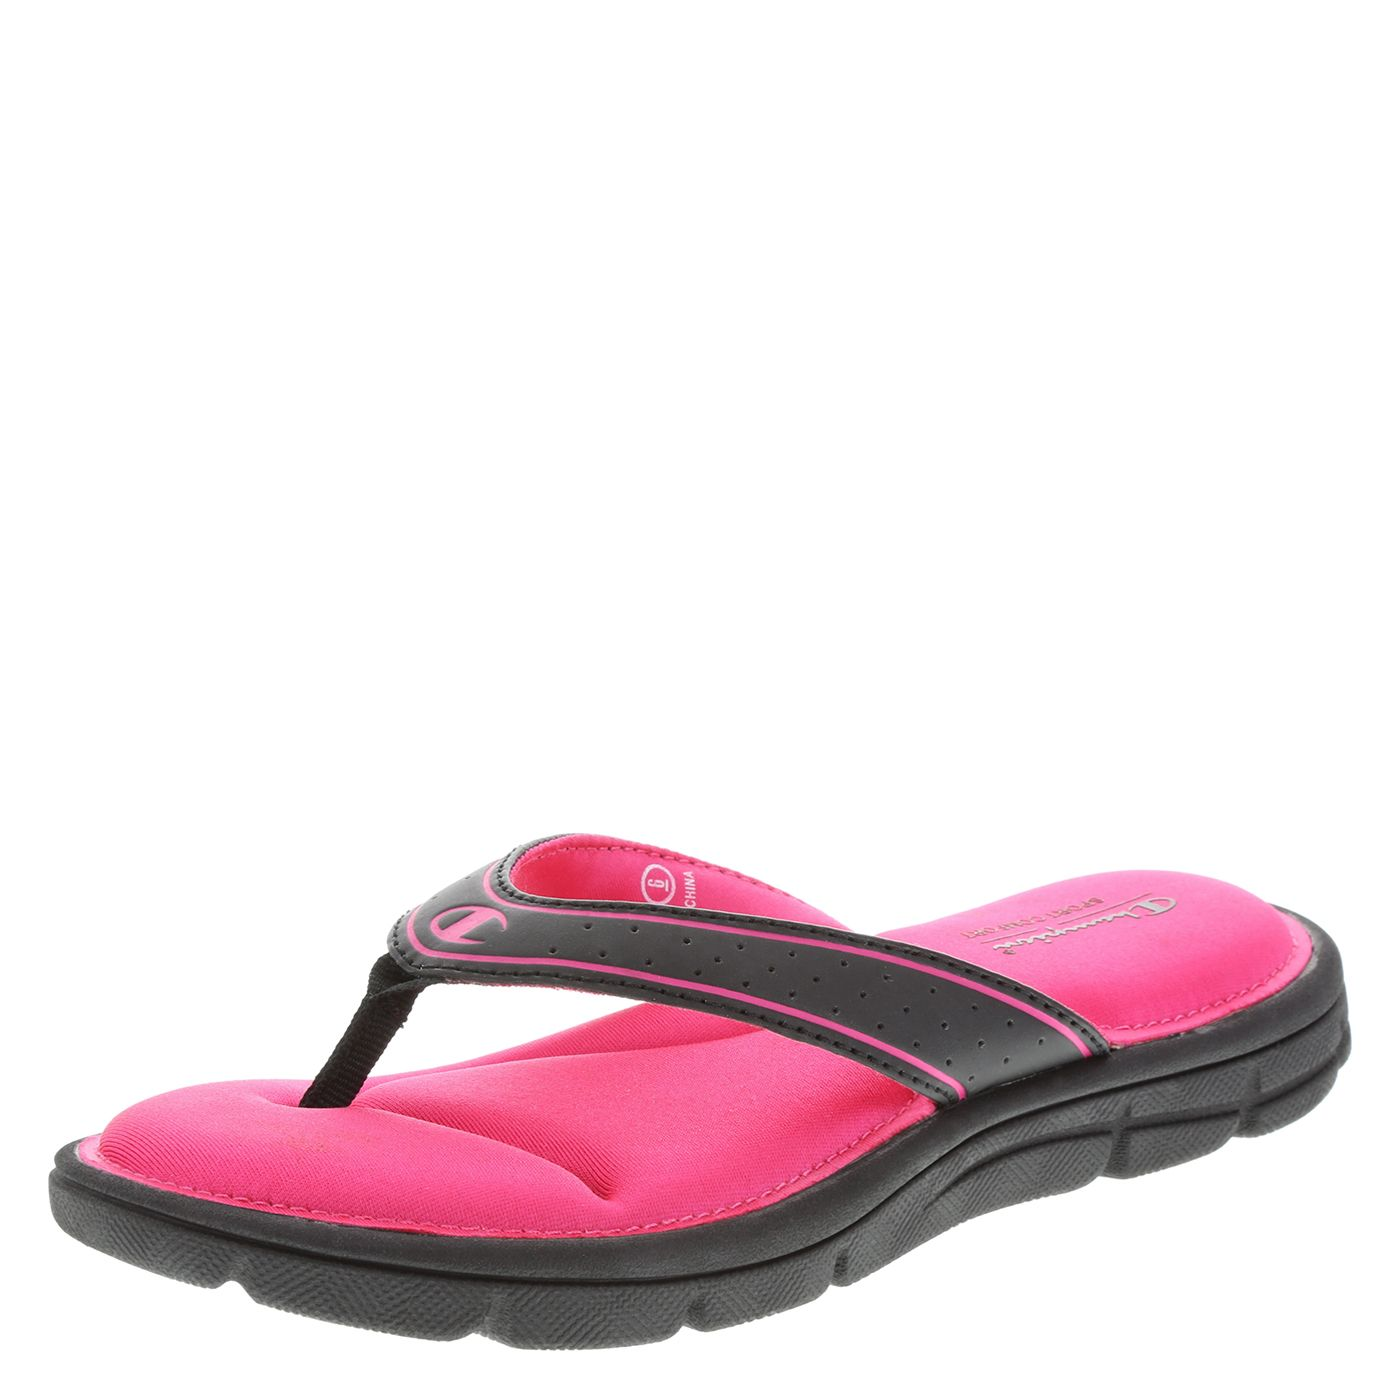 f3640e7f1cffc payless.com Champion Women's Renew Comfort Flip Flop (Color - Pink ...